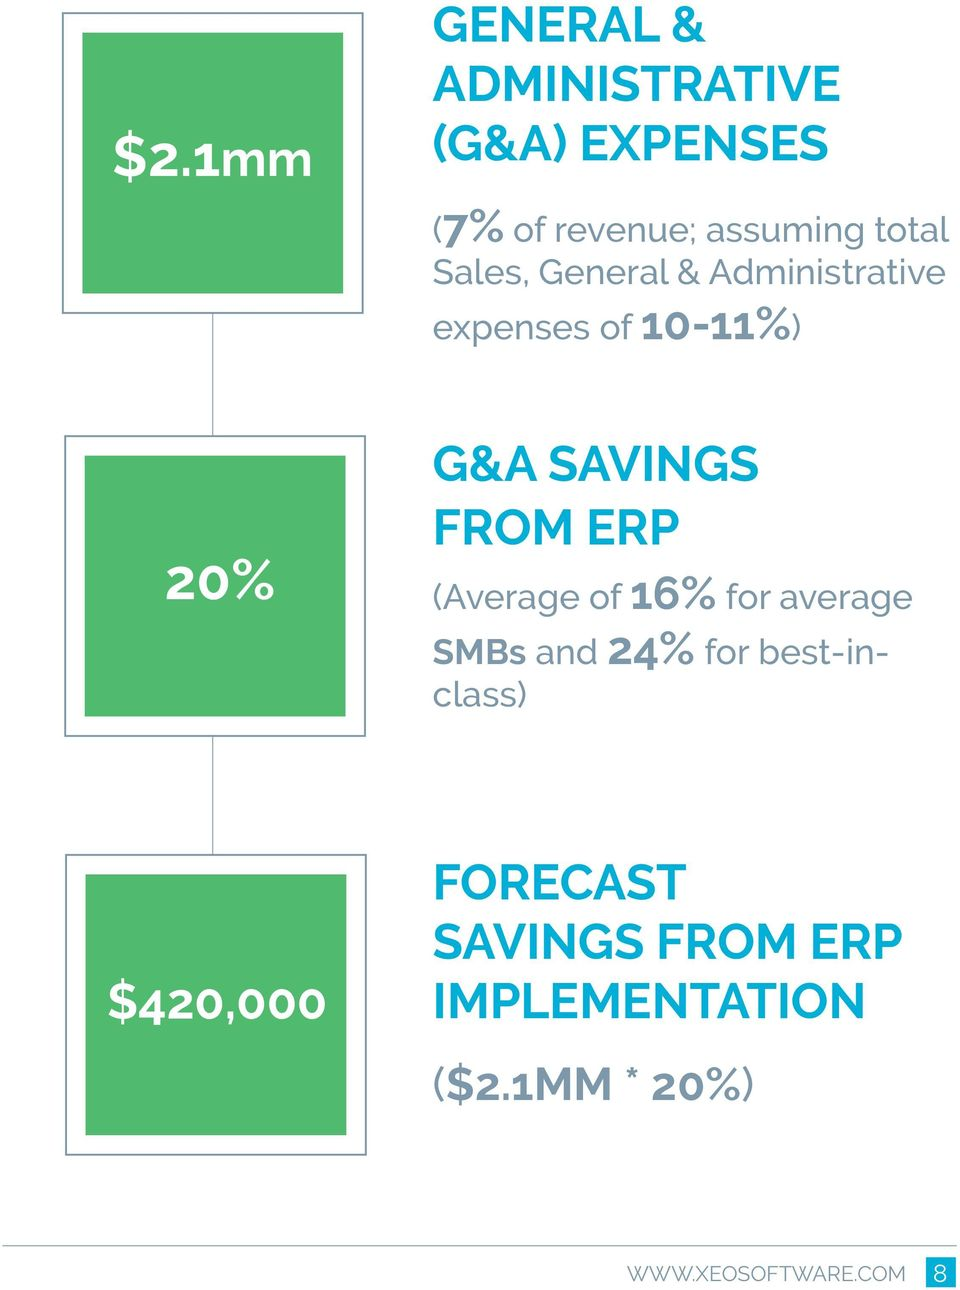 20% G&A SAVINGS FROM ERP (Average of 16% for average SMBs and 24% for